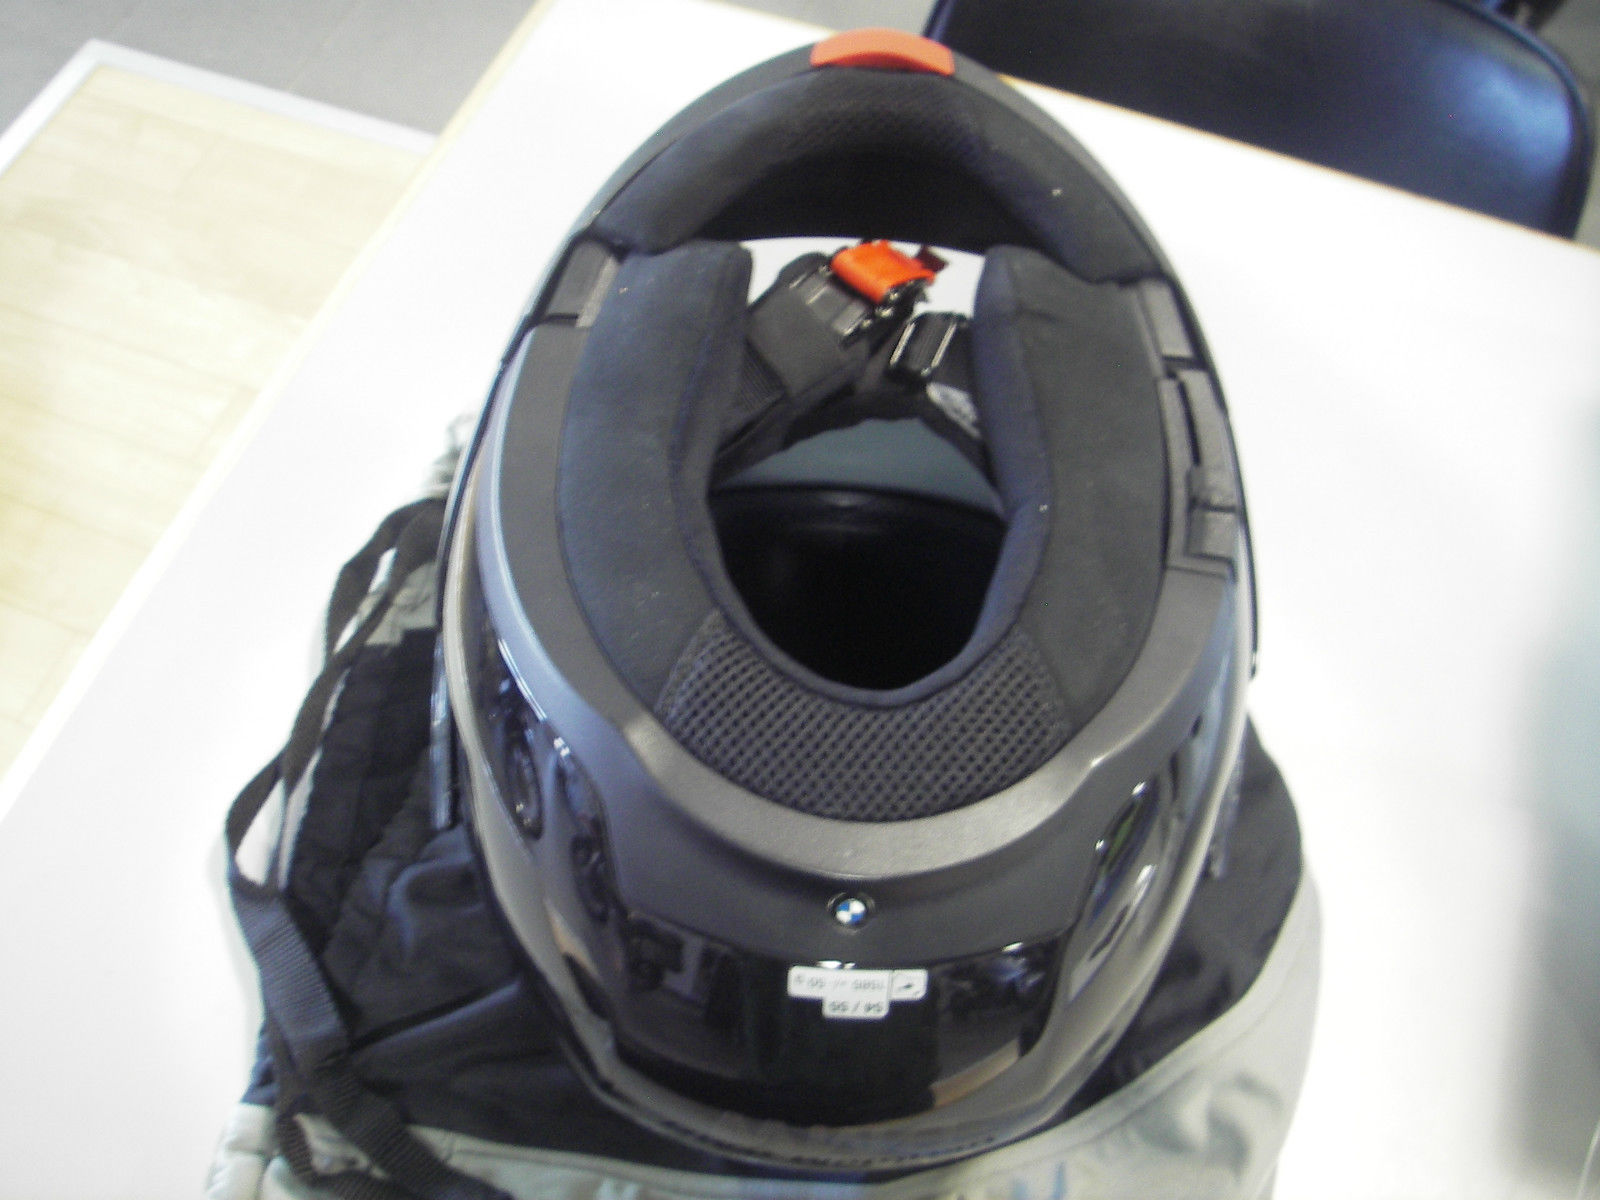 for sale new bmw system 6 motorcycle helmet new with. Black Bedroom Furniture Sets. Home Design Ideas